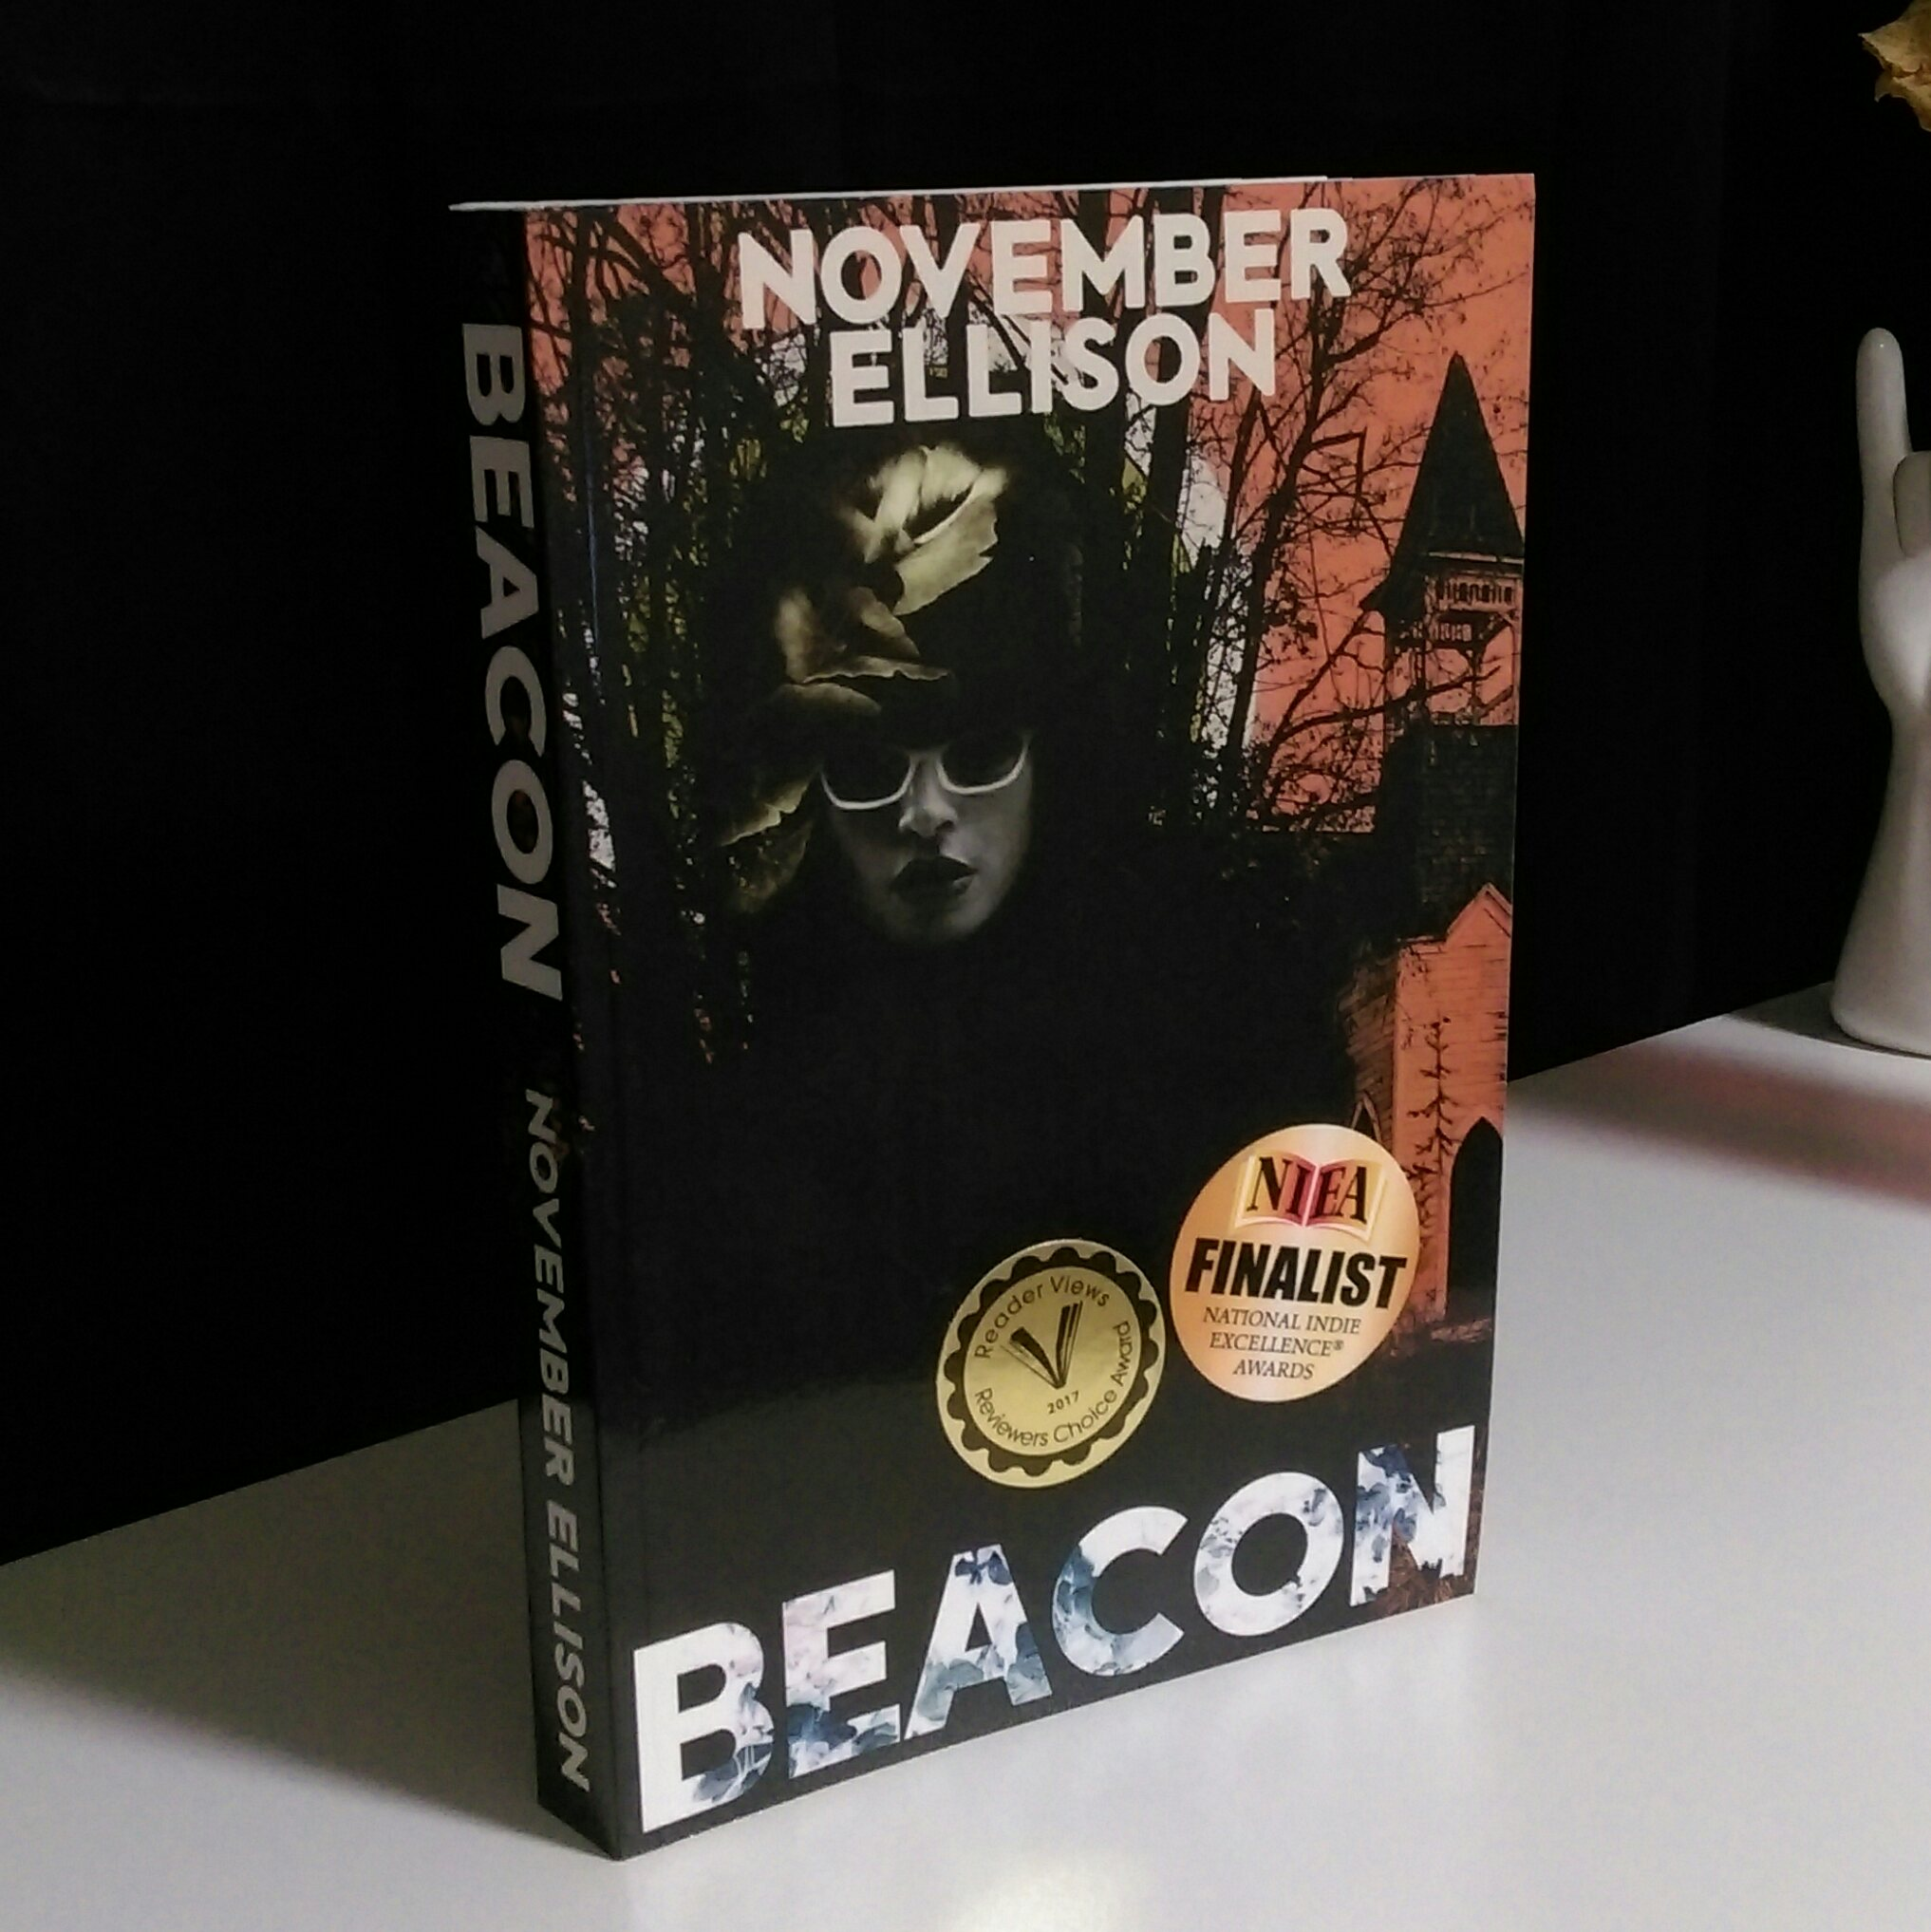 Beacon by November Ellison